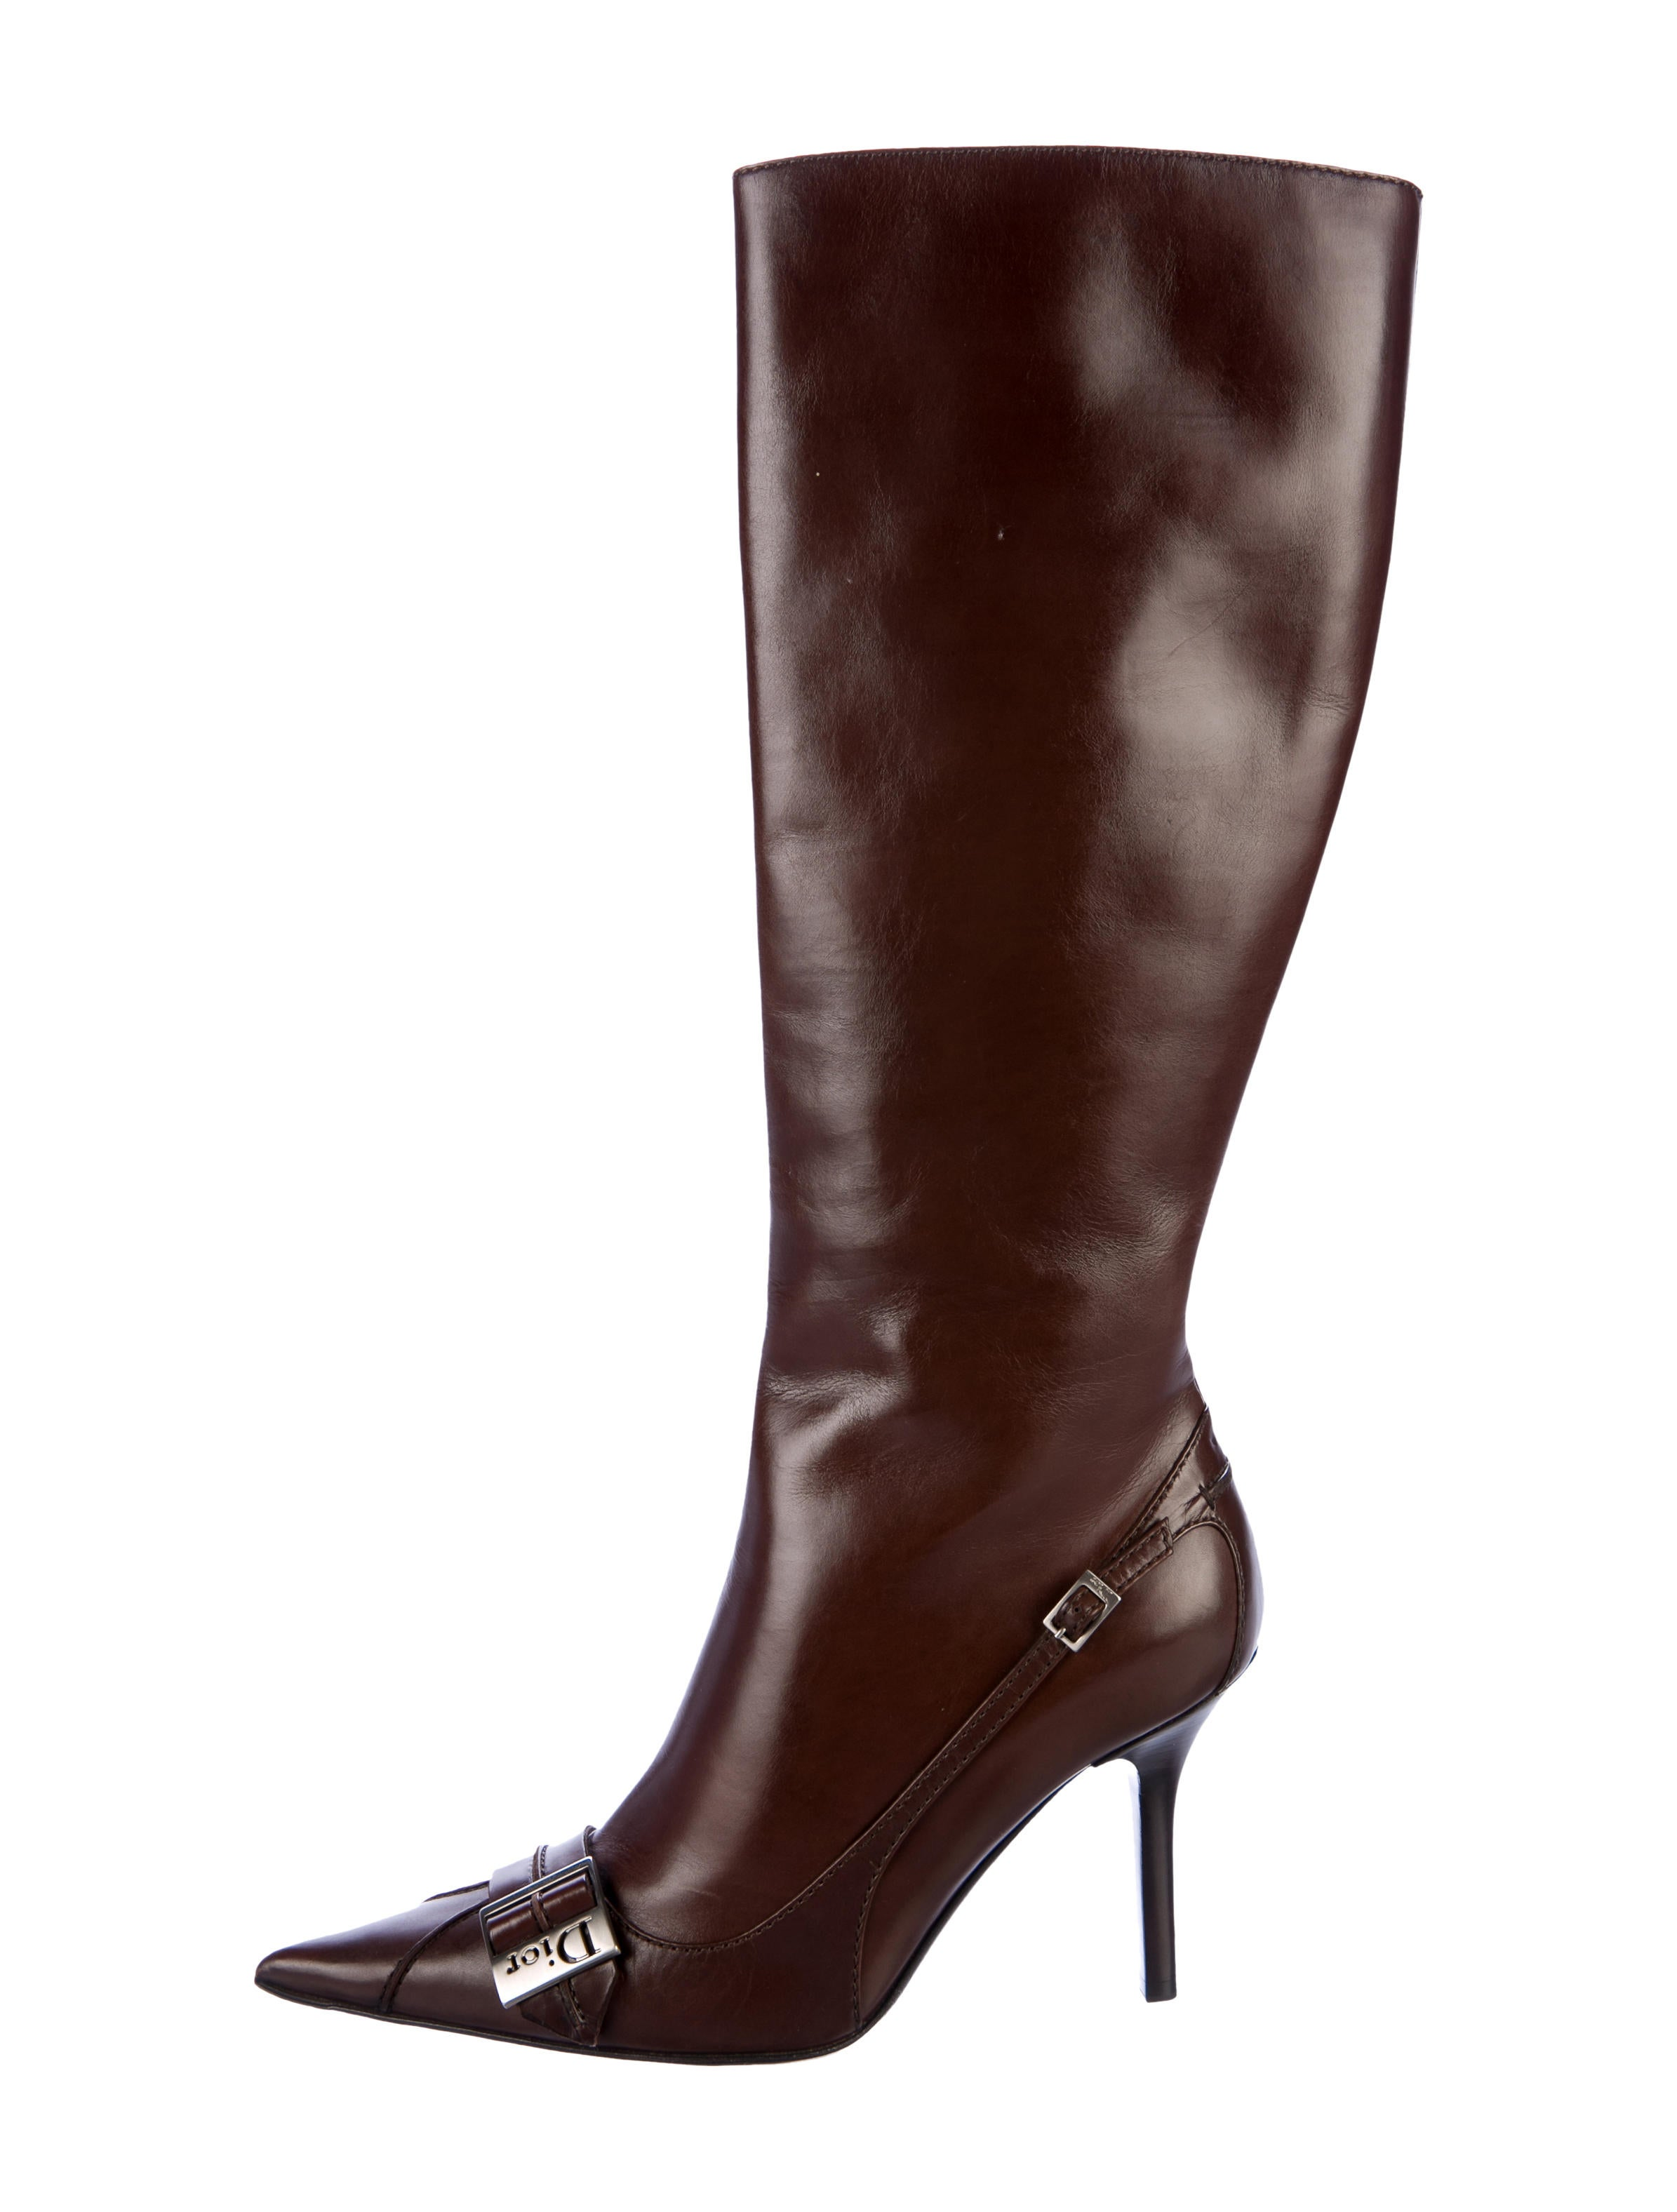 cheap sale footaction Christian Dior Leather Knee-High Boots clearance clearance store I5Homt8